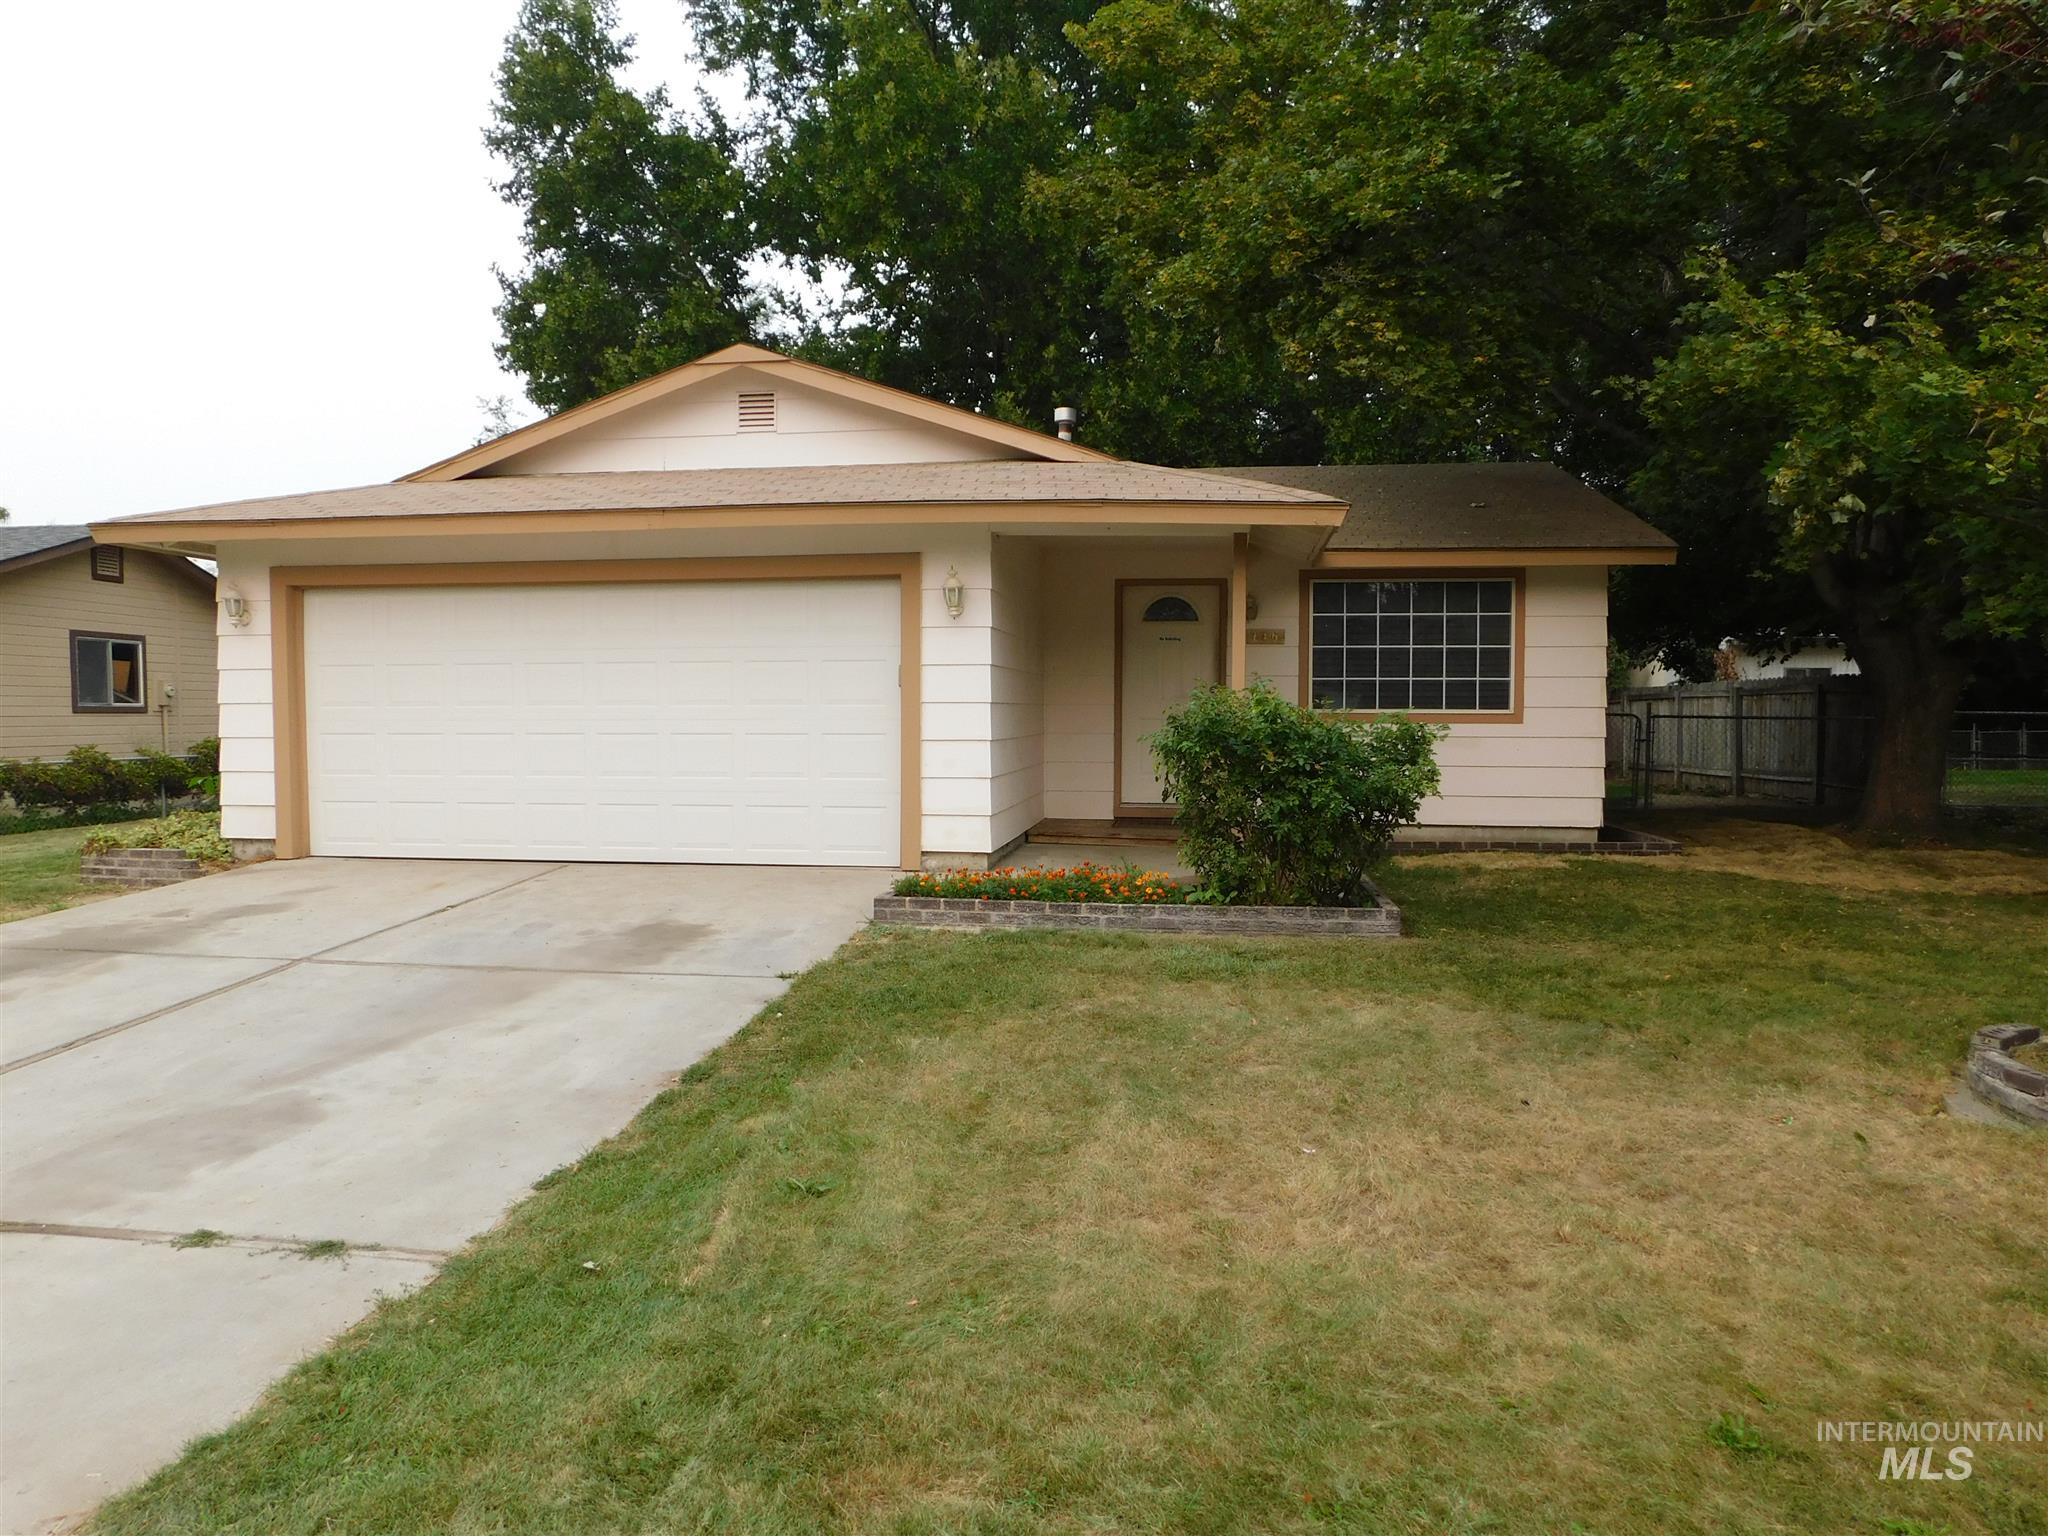 Photo for 746 W Kinghorn Dr, Nampa, ID 83651 (MLS # 98780997)